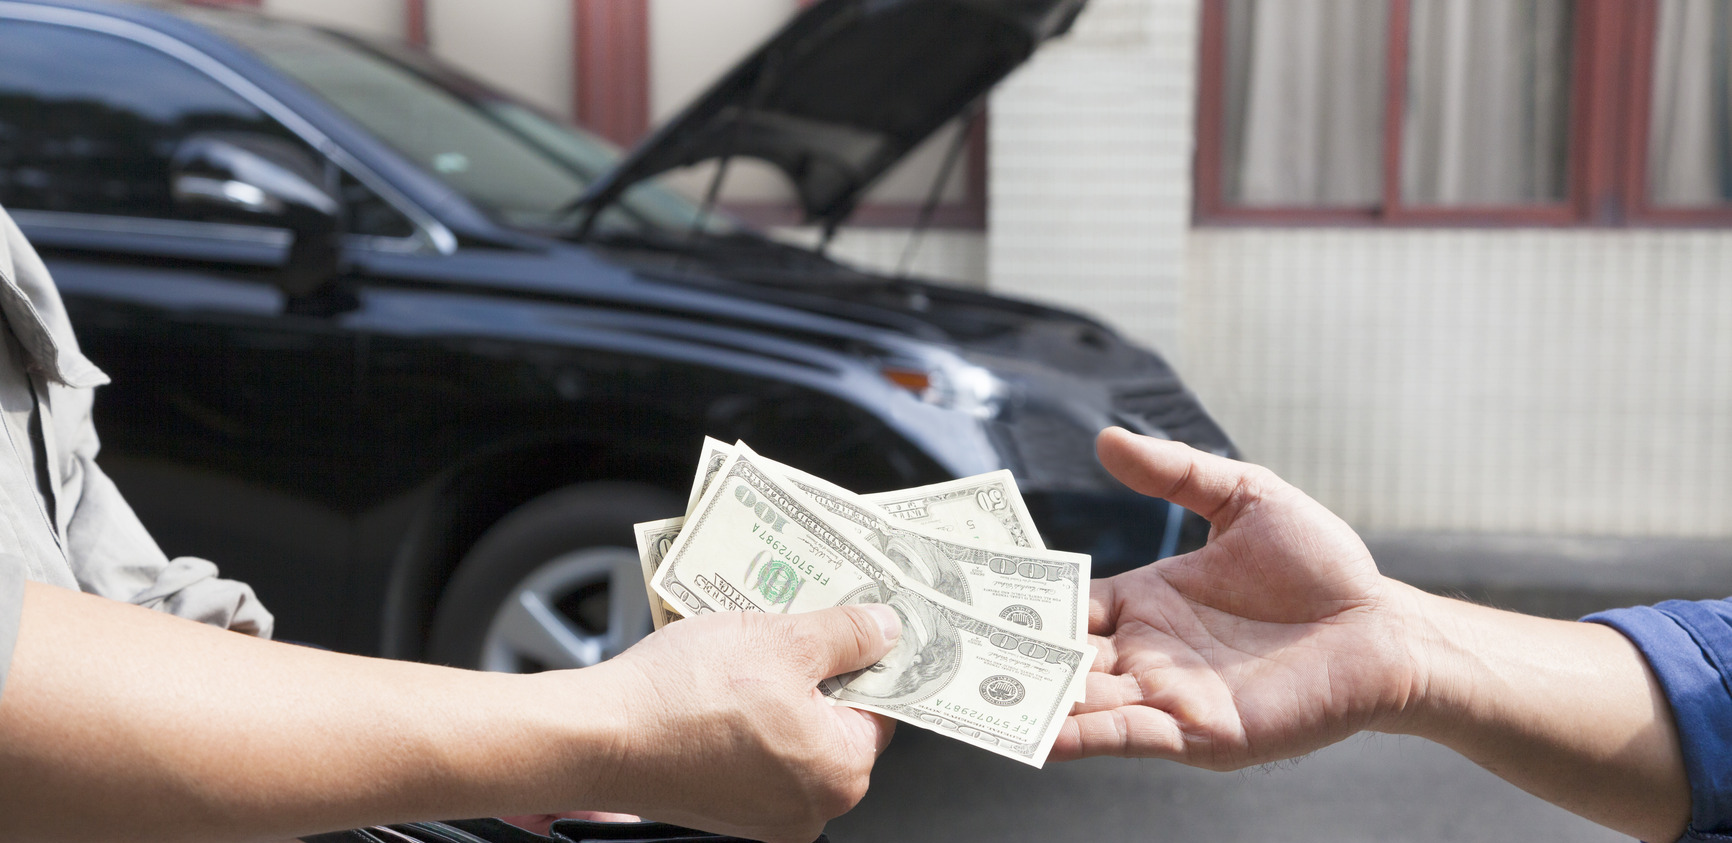 COMMON SENSE TIPS WHEN SELLING YOUR VEHICLE